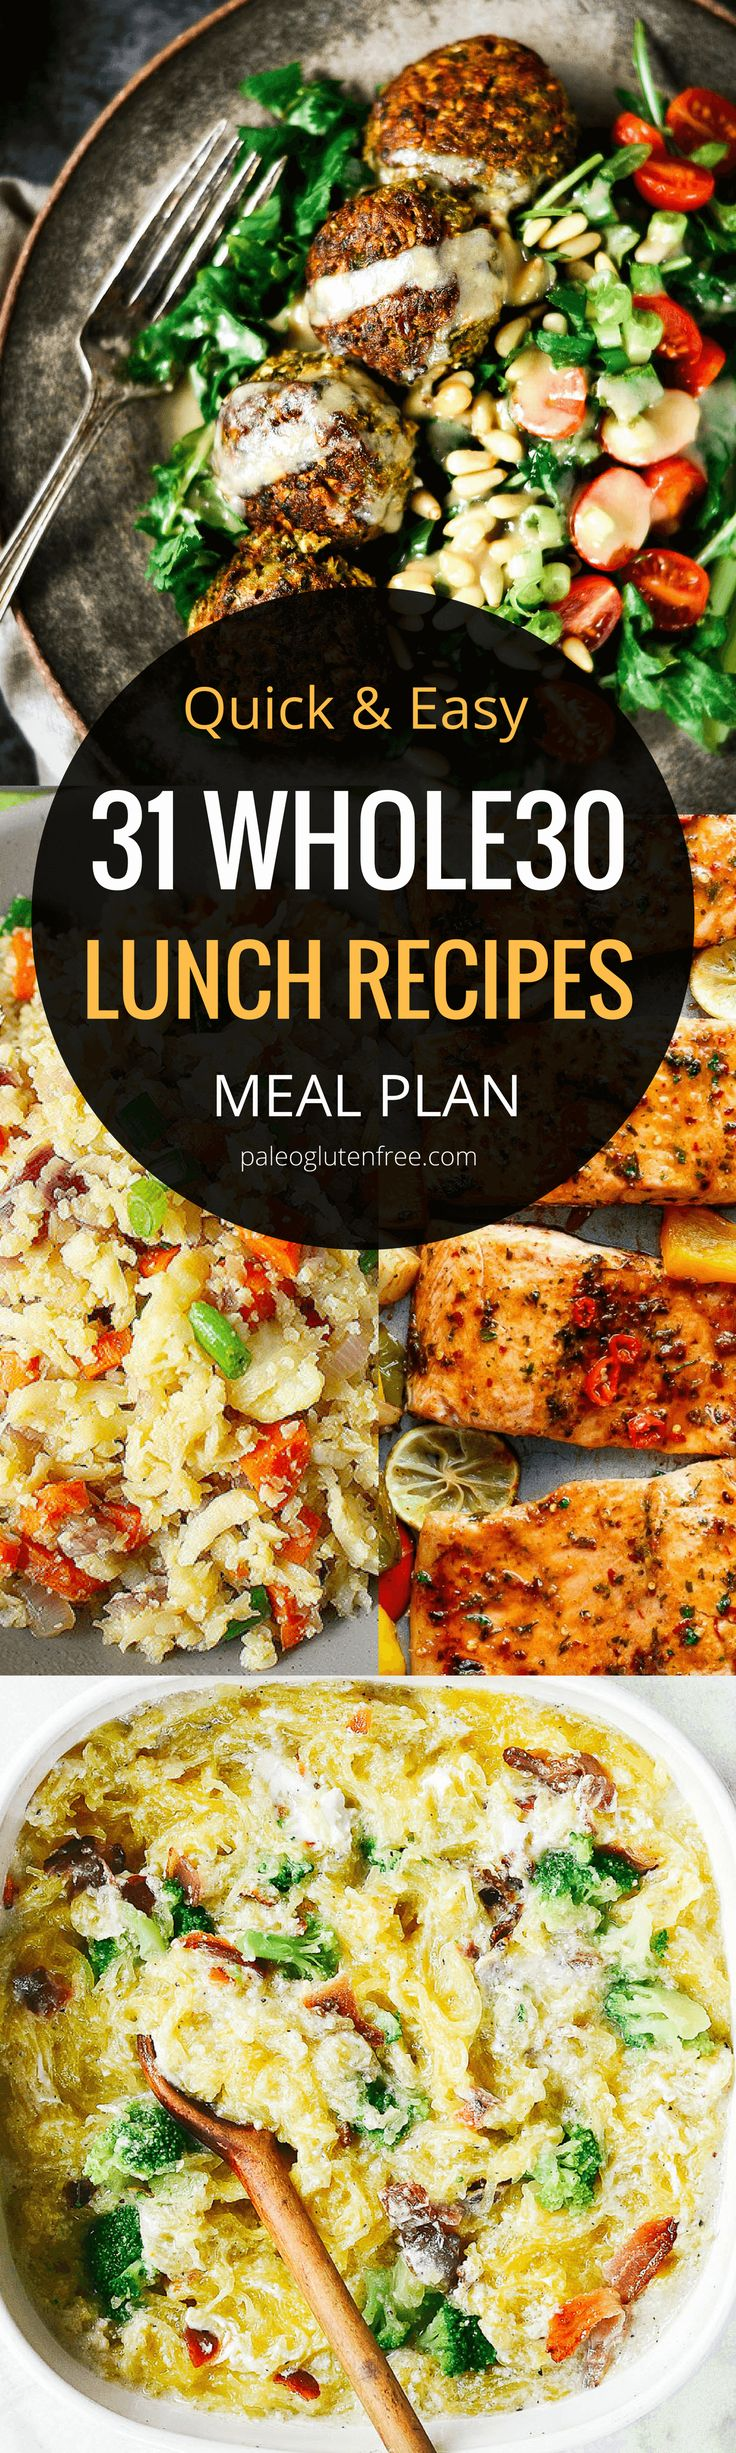 Best Whole30 Lunch Recipes Meal Plan